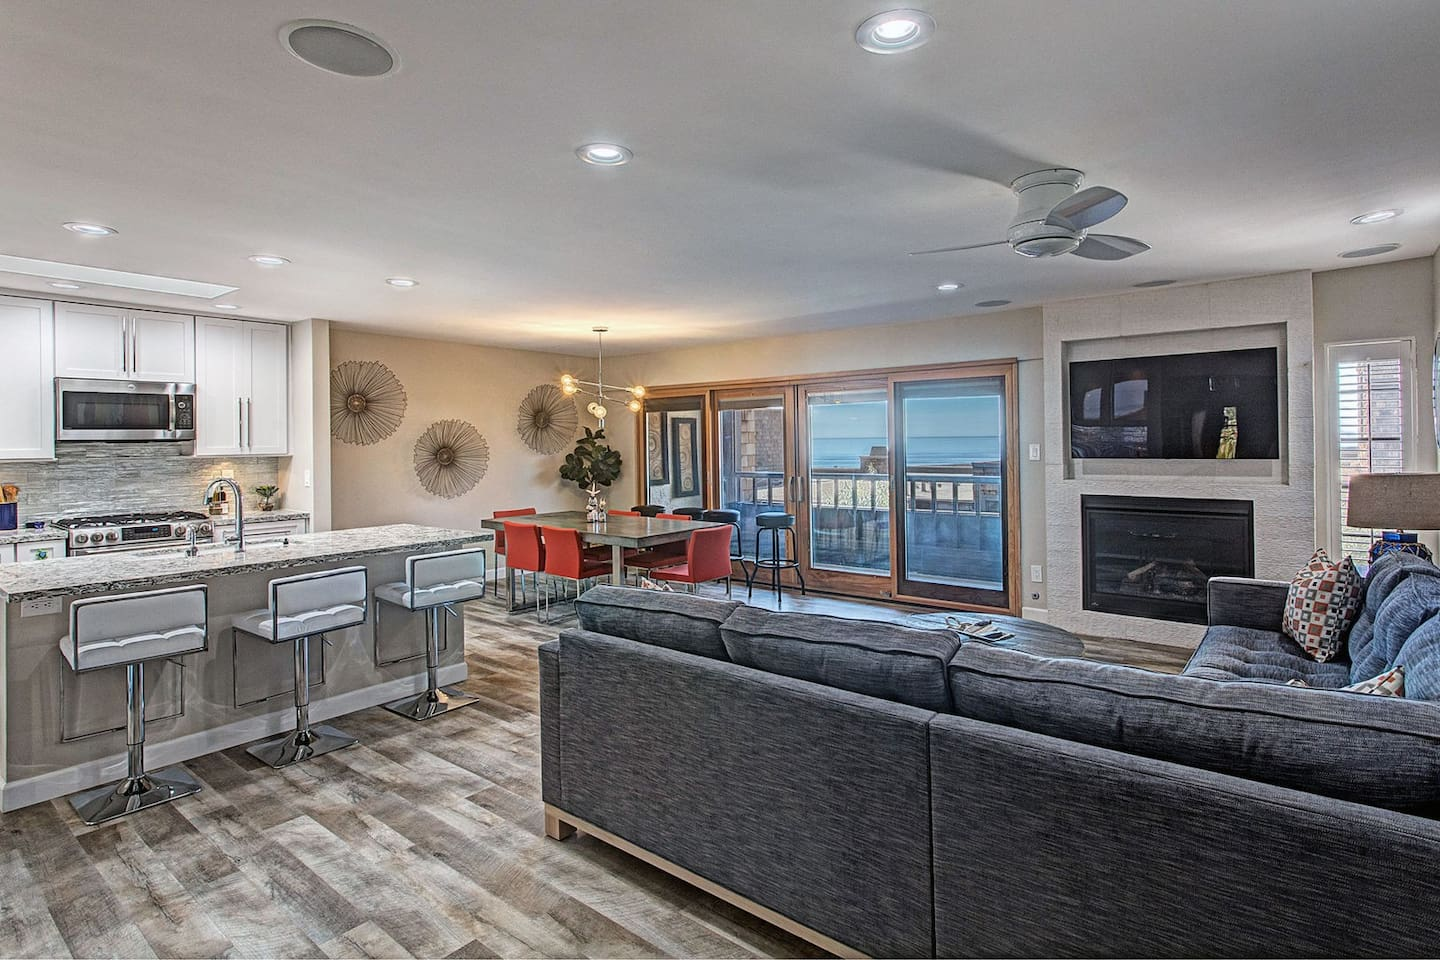 Kitchen, living room, dinning room with an ocean view!